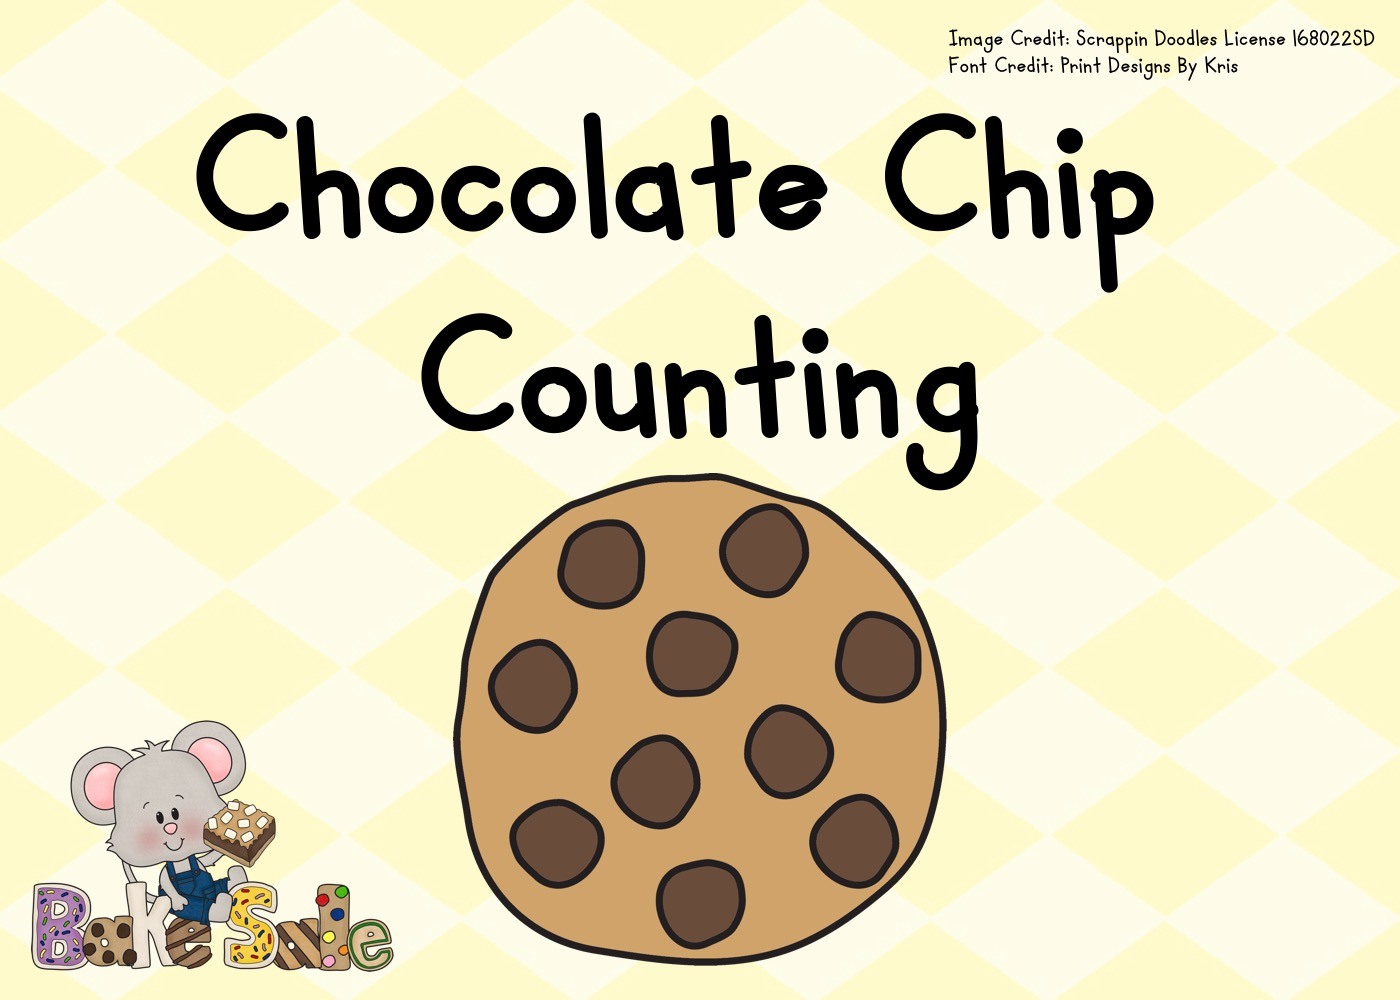 Fun Food Printables for Preschool and Kindergarten | Cookie Themed Counting Games | Hands On Math Homeschool Activities | Kids Classroom Center Ideas and Worksheets #FreePrintableWorksheetsForKids #chocolate #counting #cookie #food